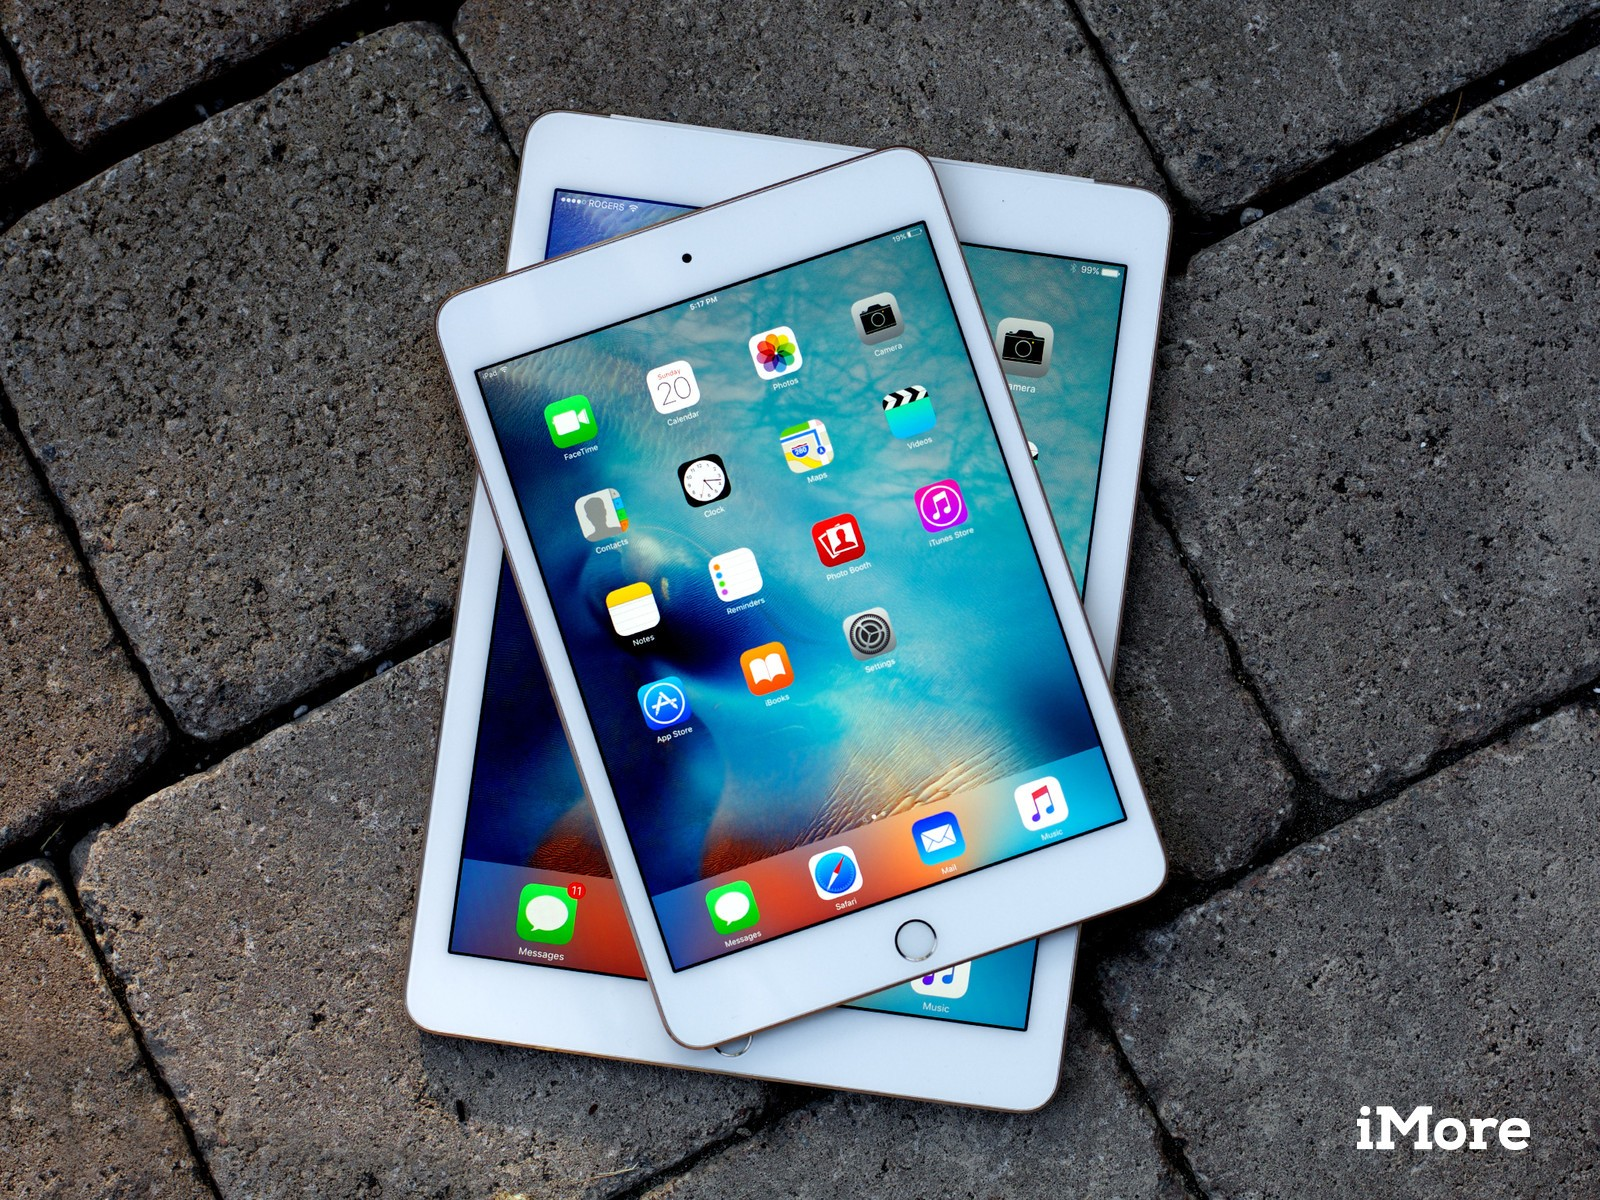 Use Sprint and T-Mobile together on your iPad Air 2 or Mini 4 with Google's Project Fi